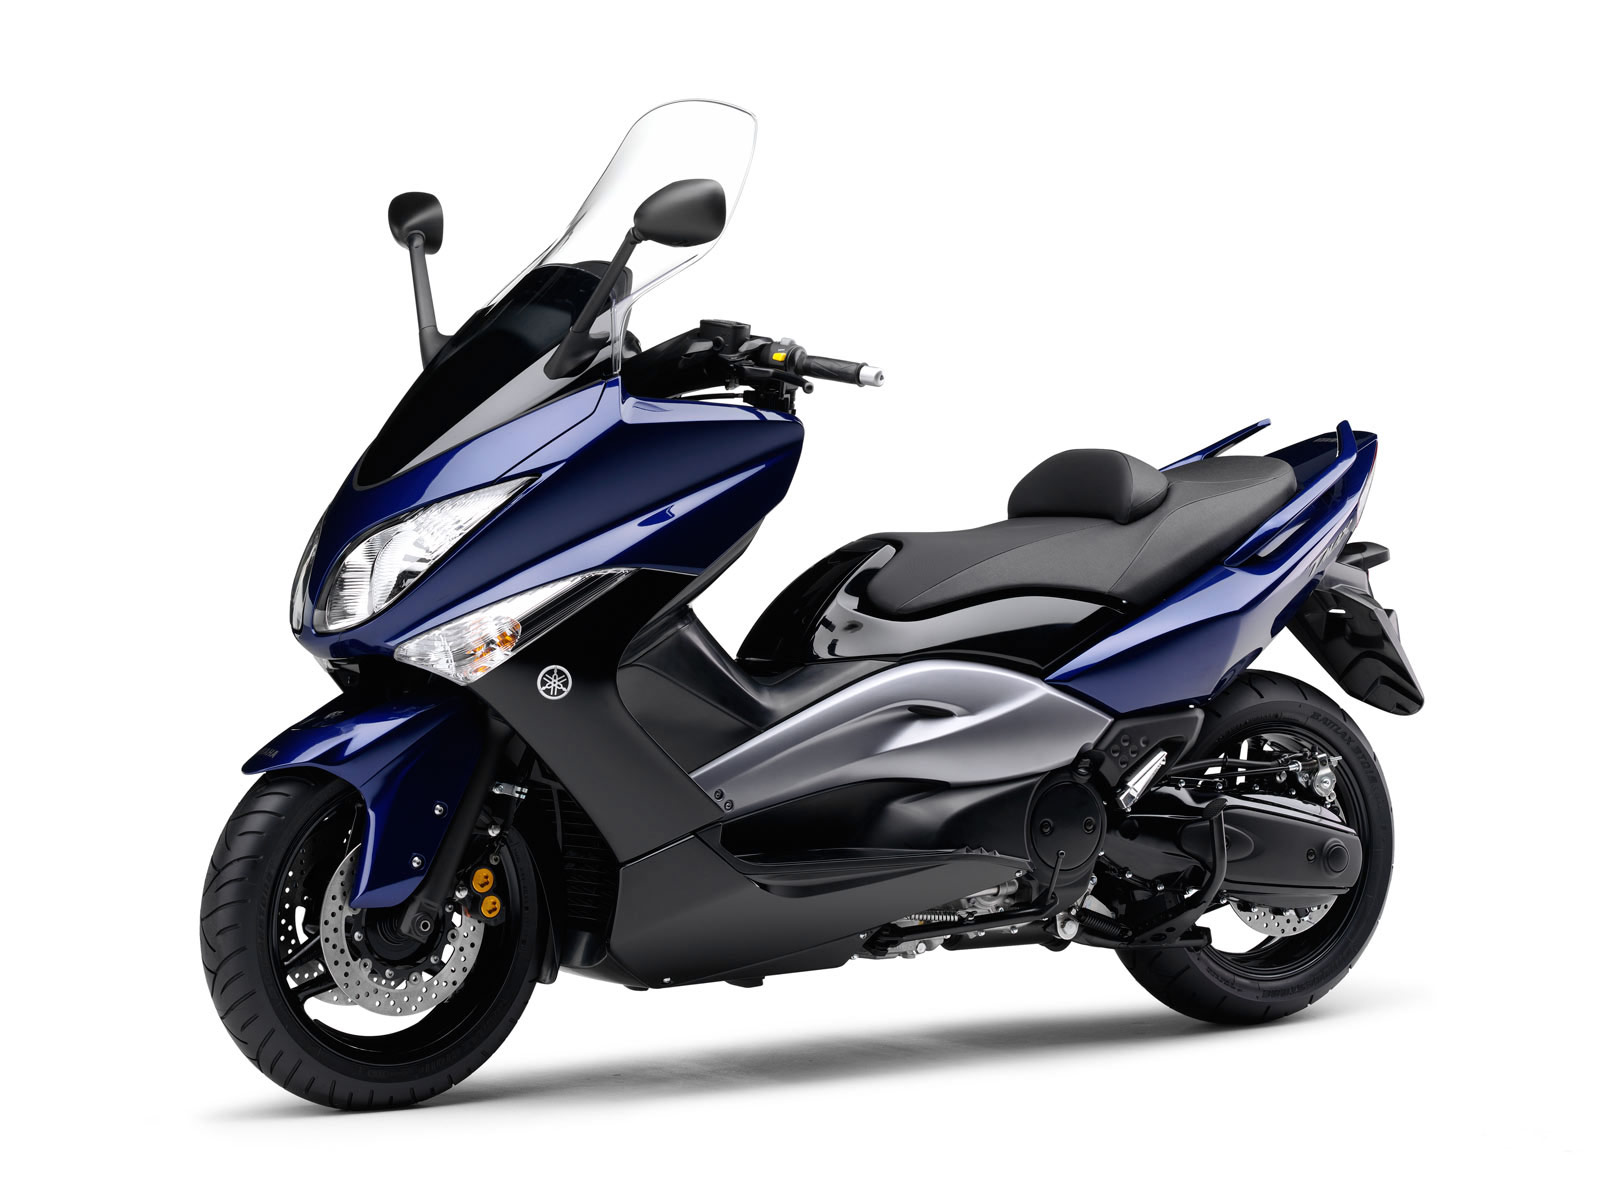 2008 YAMAHA Tmax Scooter Pictures, Insurance, Specs